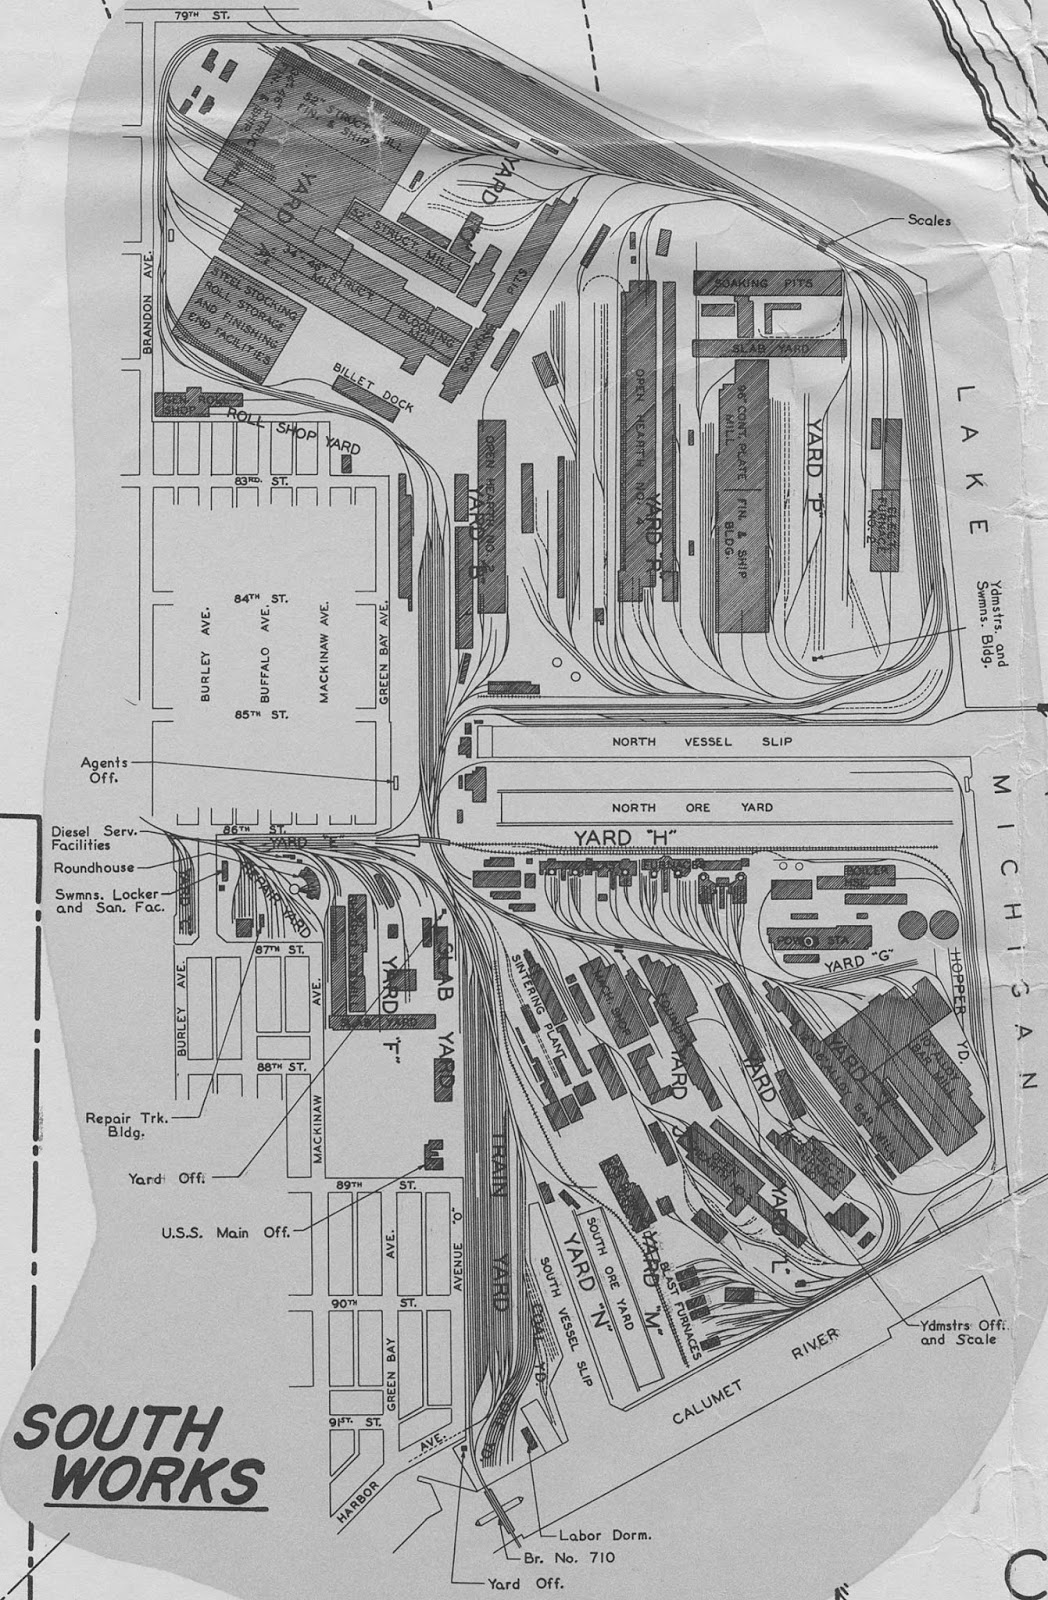 A map of the South Works mill at its peak. Clearly, the size of the mill held plenty of workers, workers that would develop and shape the surrounding South Chicago community. Courtesy of Kevin Piper.